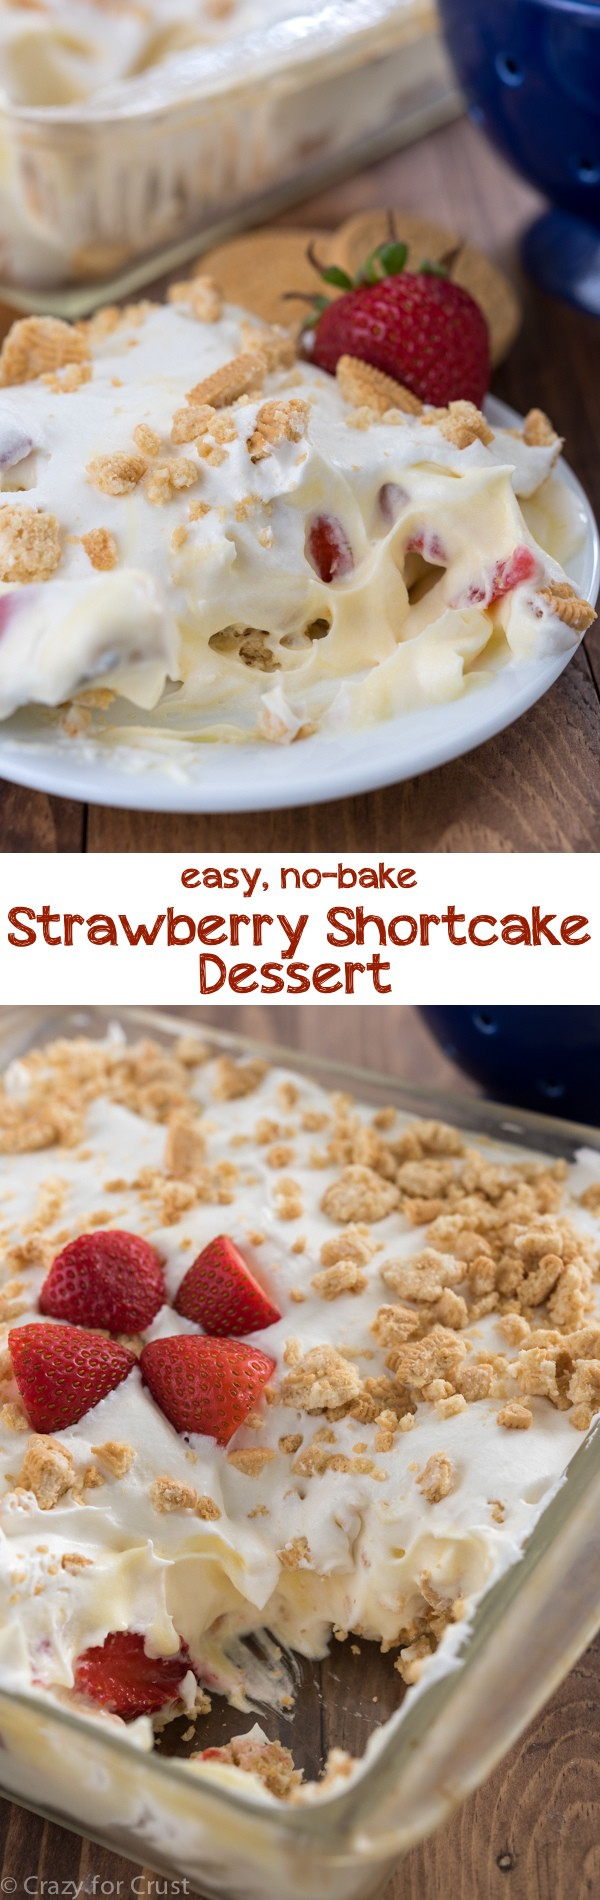 No bake strawberry shortcake dessert crazy for crust for Easy no bake dessert recipes with few ingredients